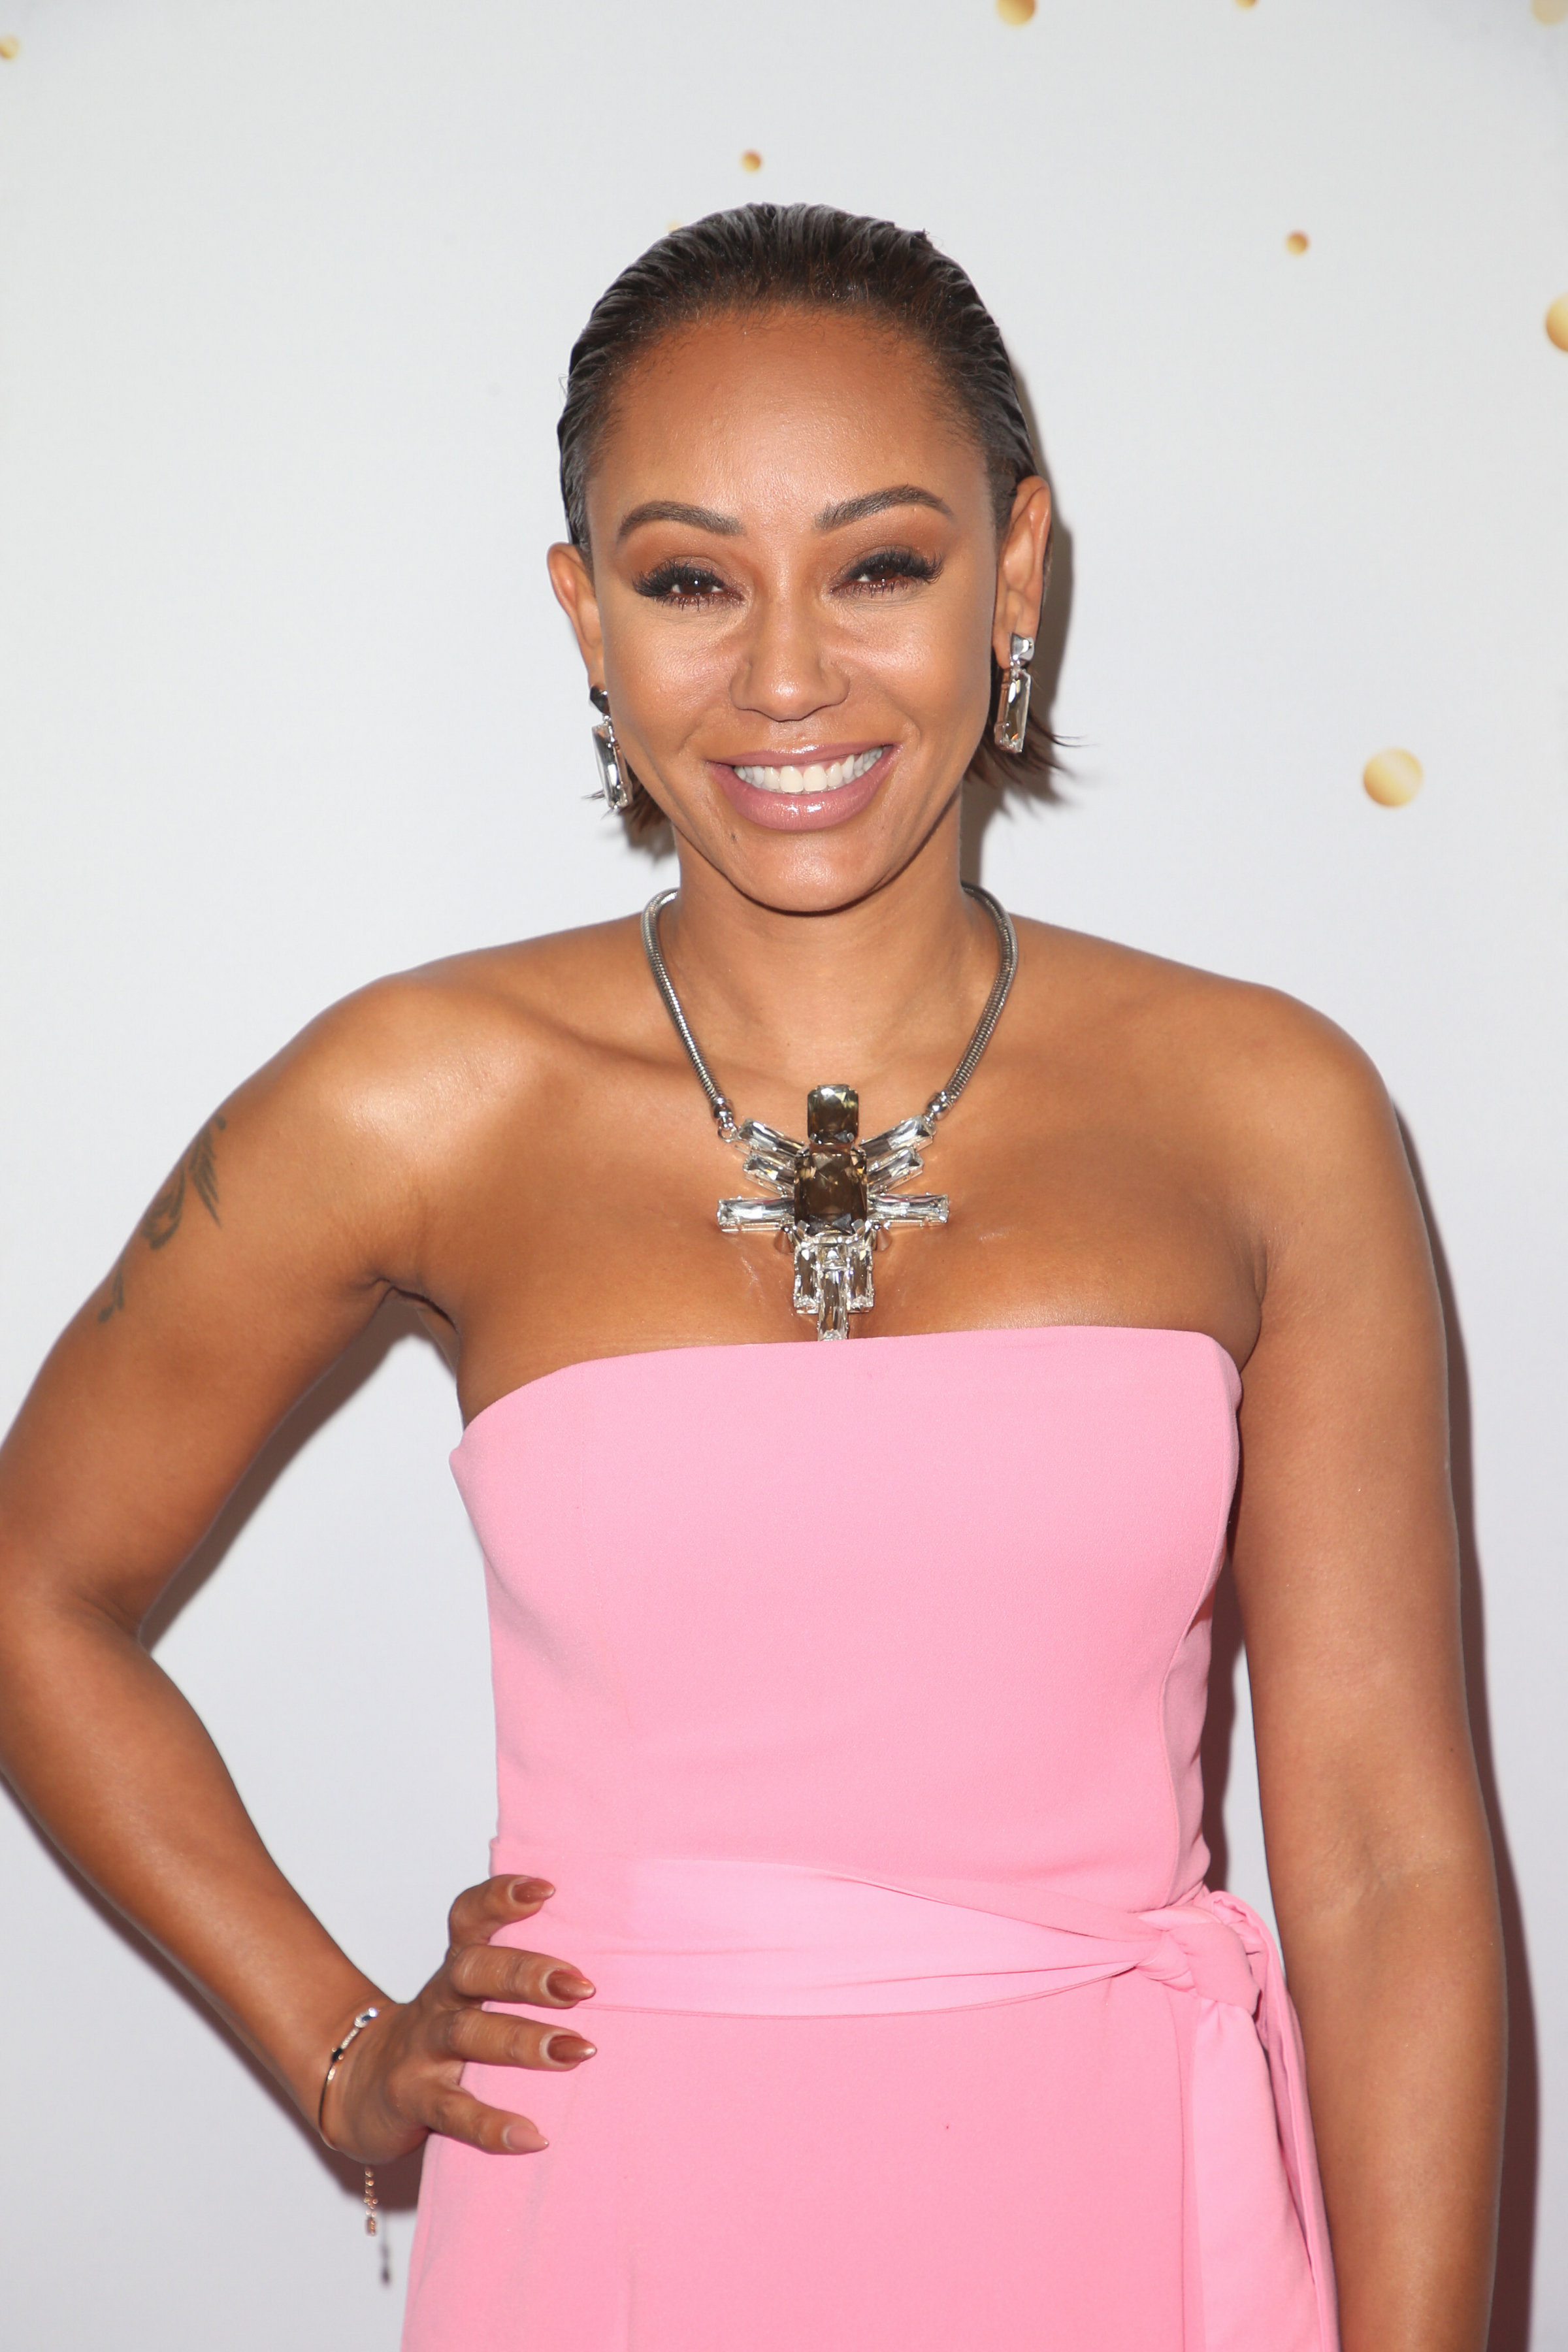 Mel B Hospitalized With 2 Broken Ribs But Won't Say What Happened